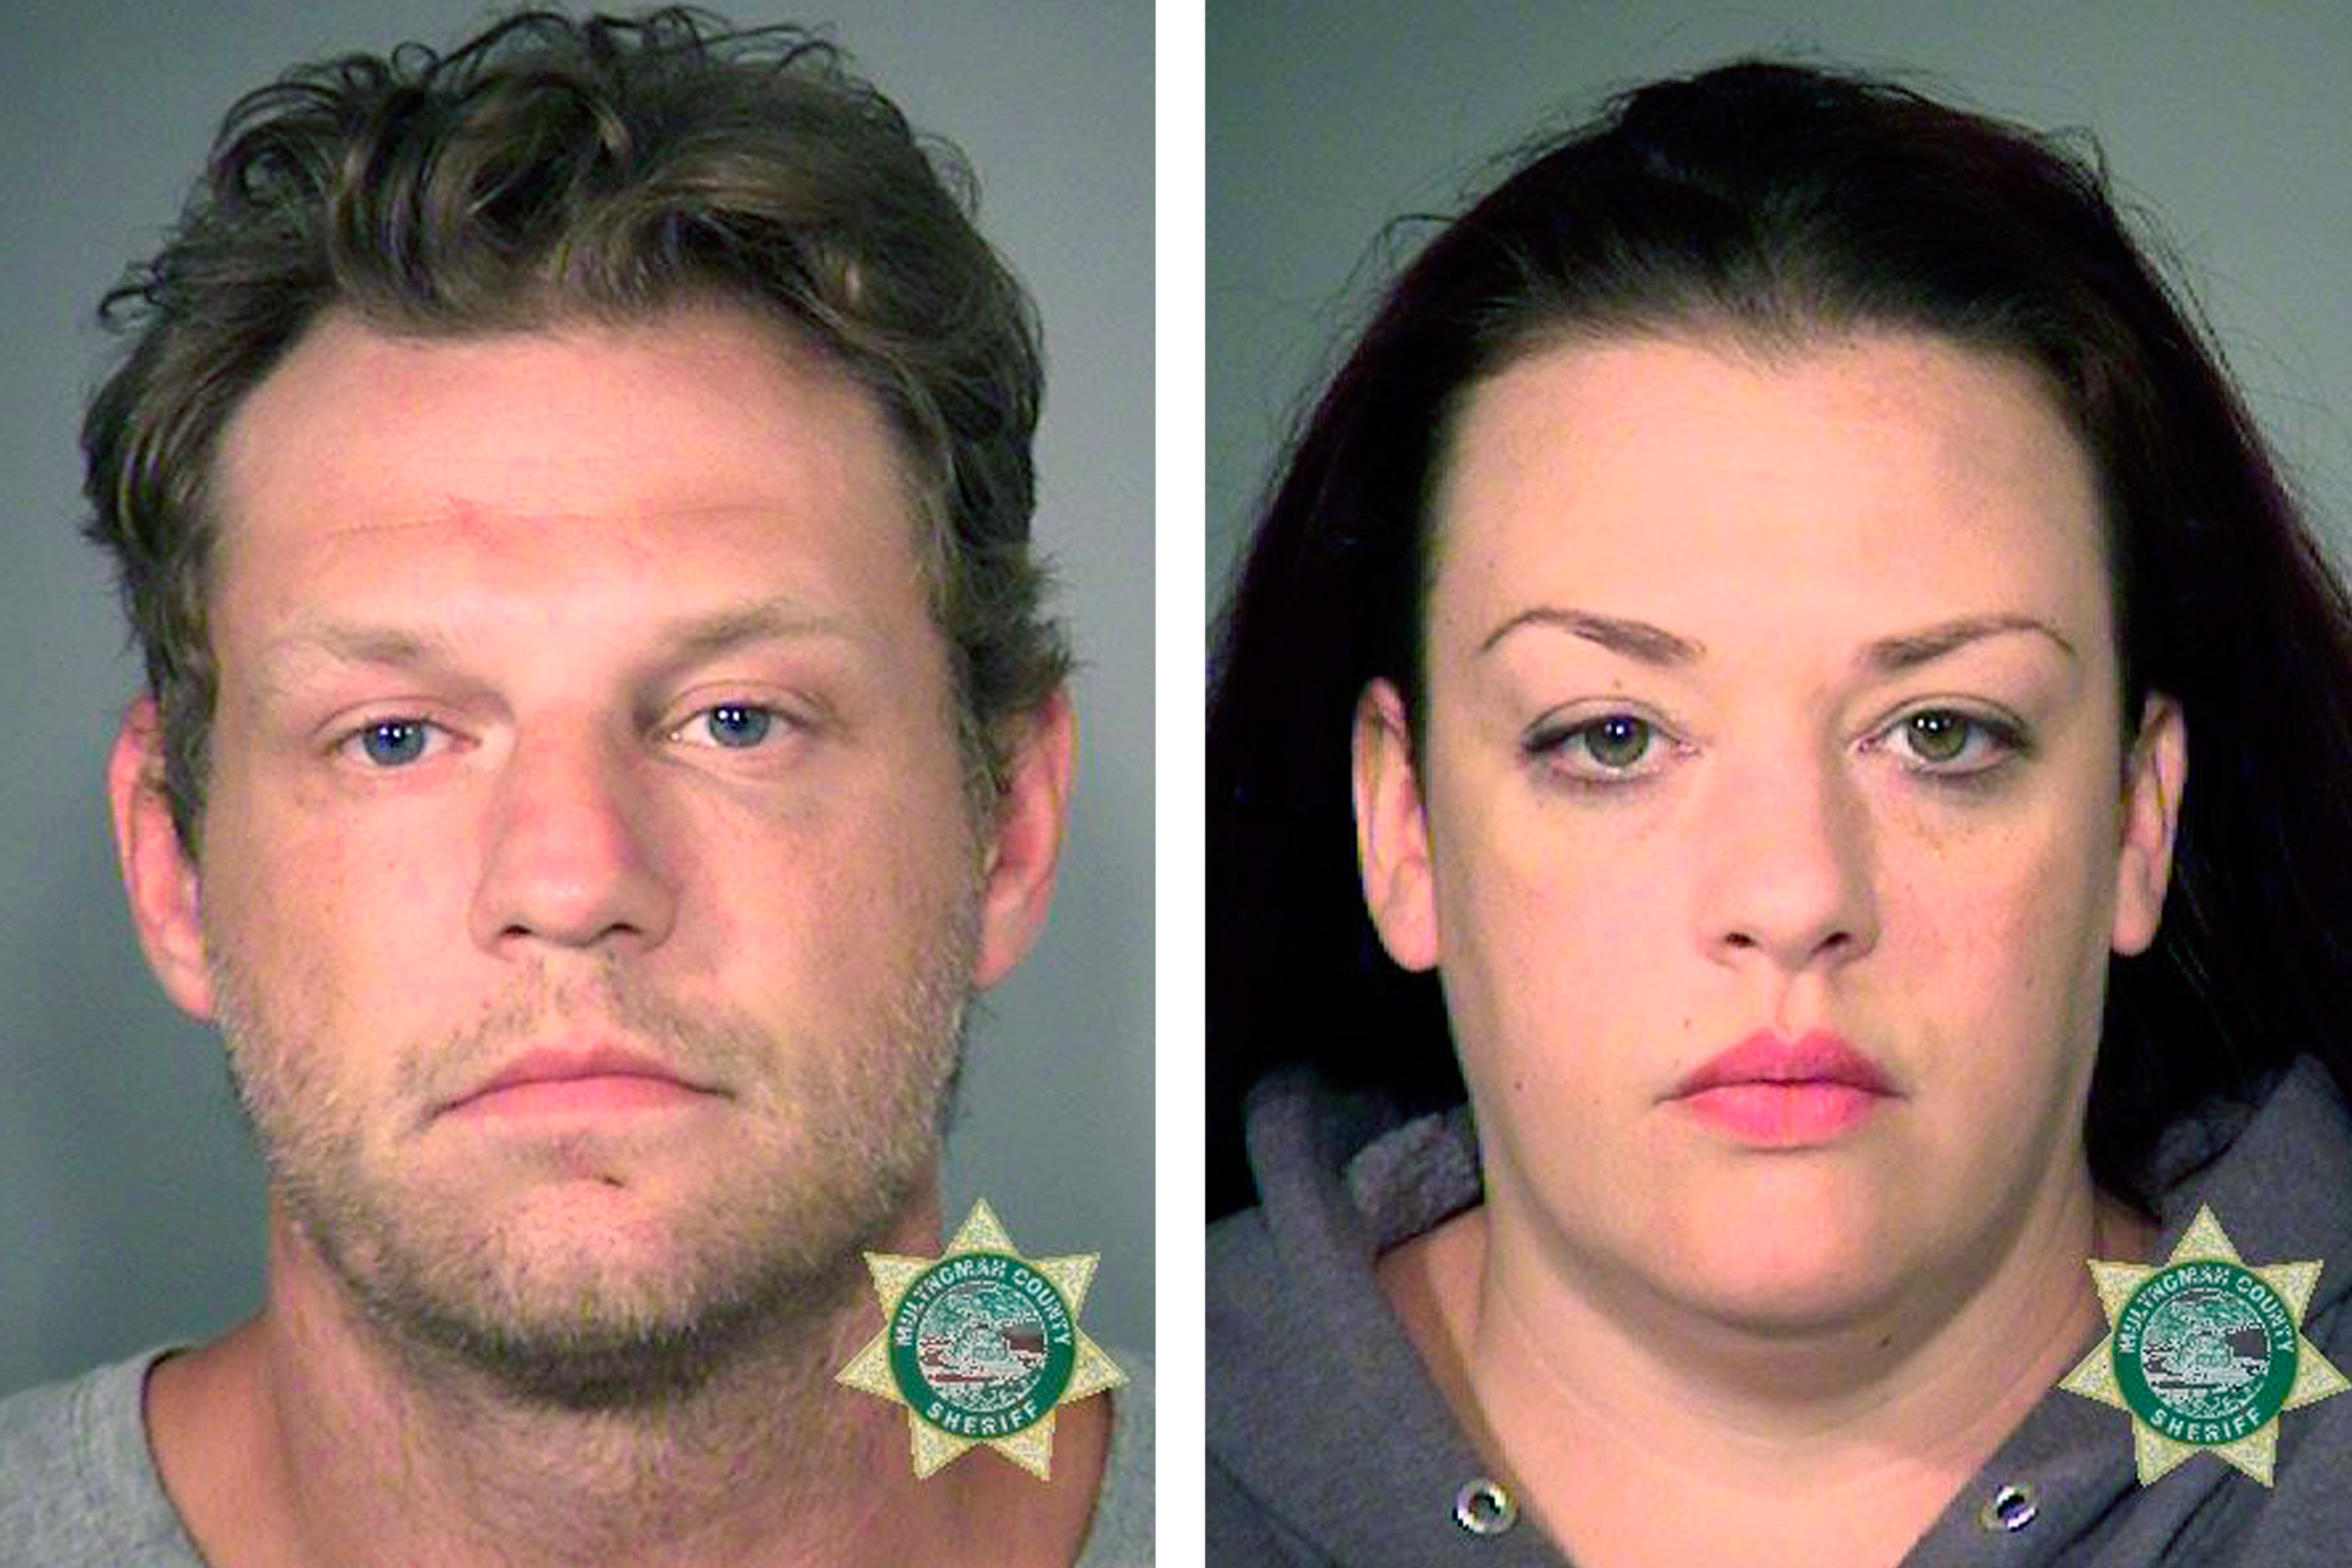 Russell Courtier (left) and Colleen Hunt in undated photos provided by the Multnomah County Sheriff's office.